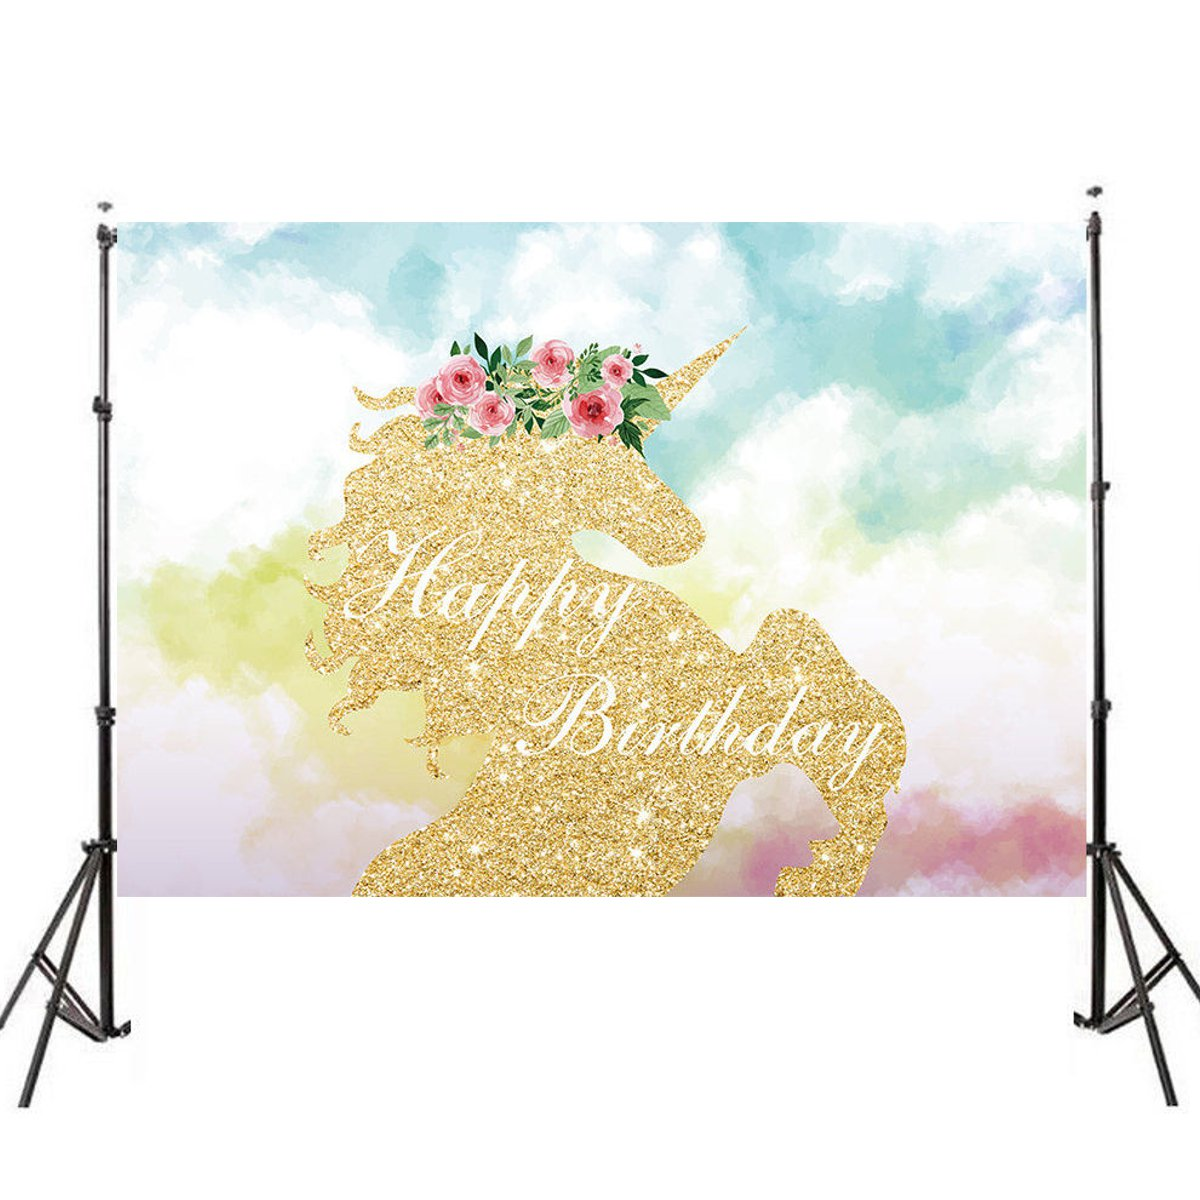 150X90cm For Unicorn Cartoon Photography Backdrop Baby Children Vinyl Photo Studio Background vinyl floral flower newborn backdrops cartoon unicorn photography background studio photo props 5x3ft